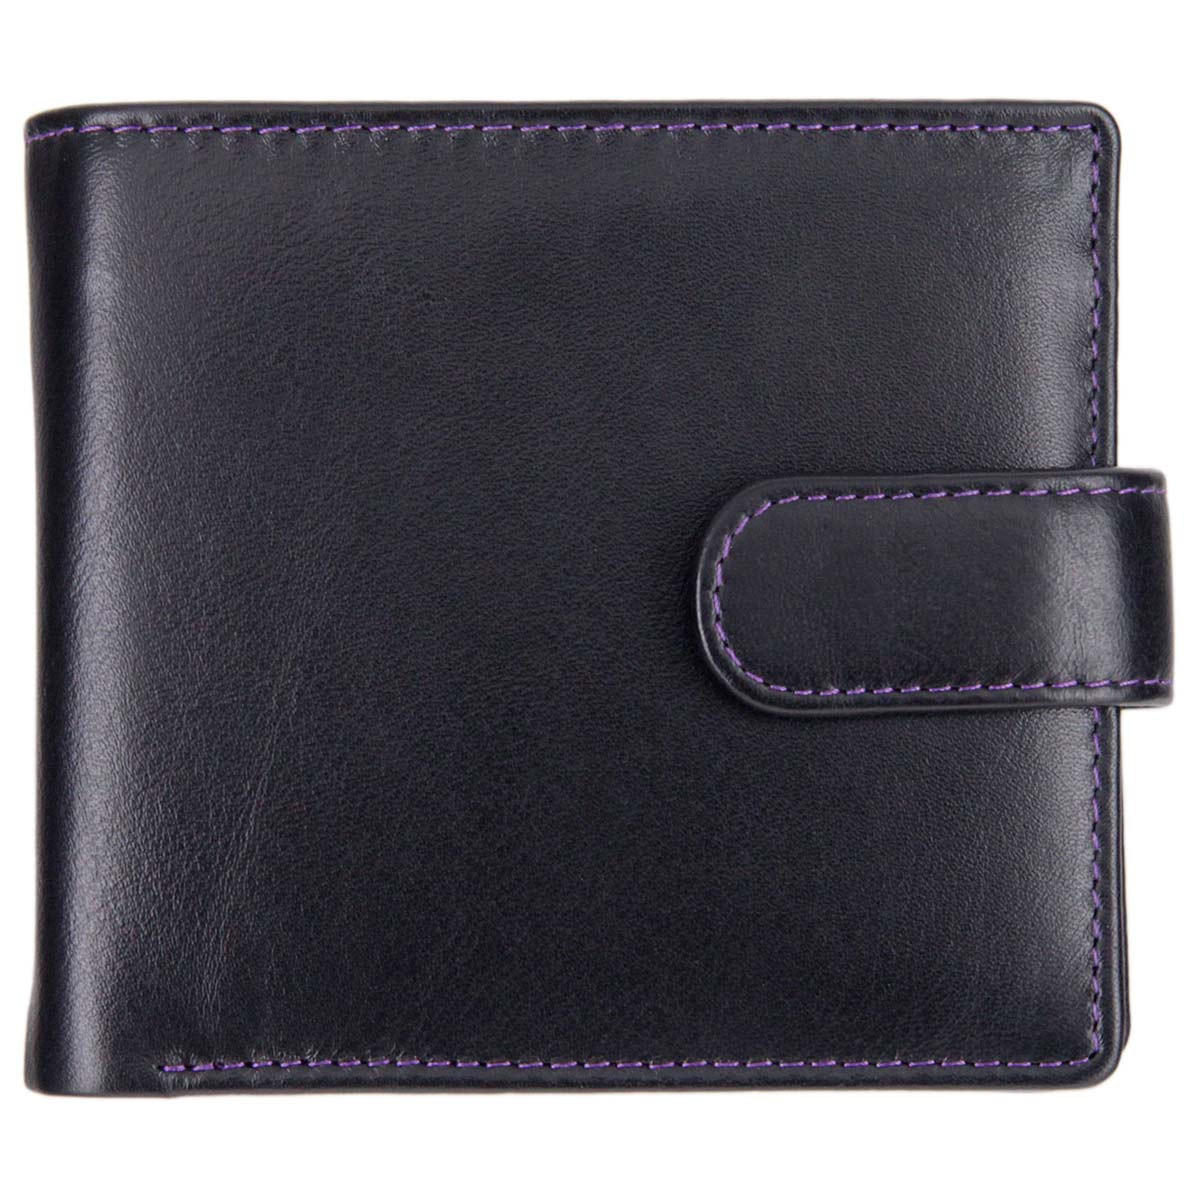 1137ff9ff10 Leather Wallet with Coin Pocket   Window - Mala Axis 163 Black-Purple